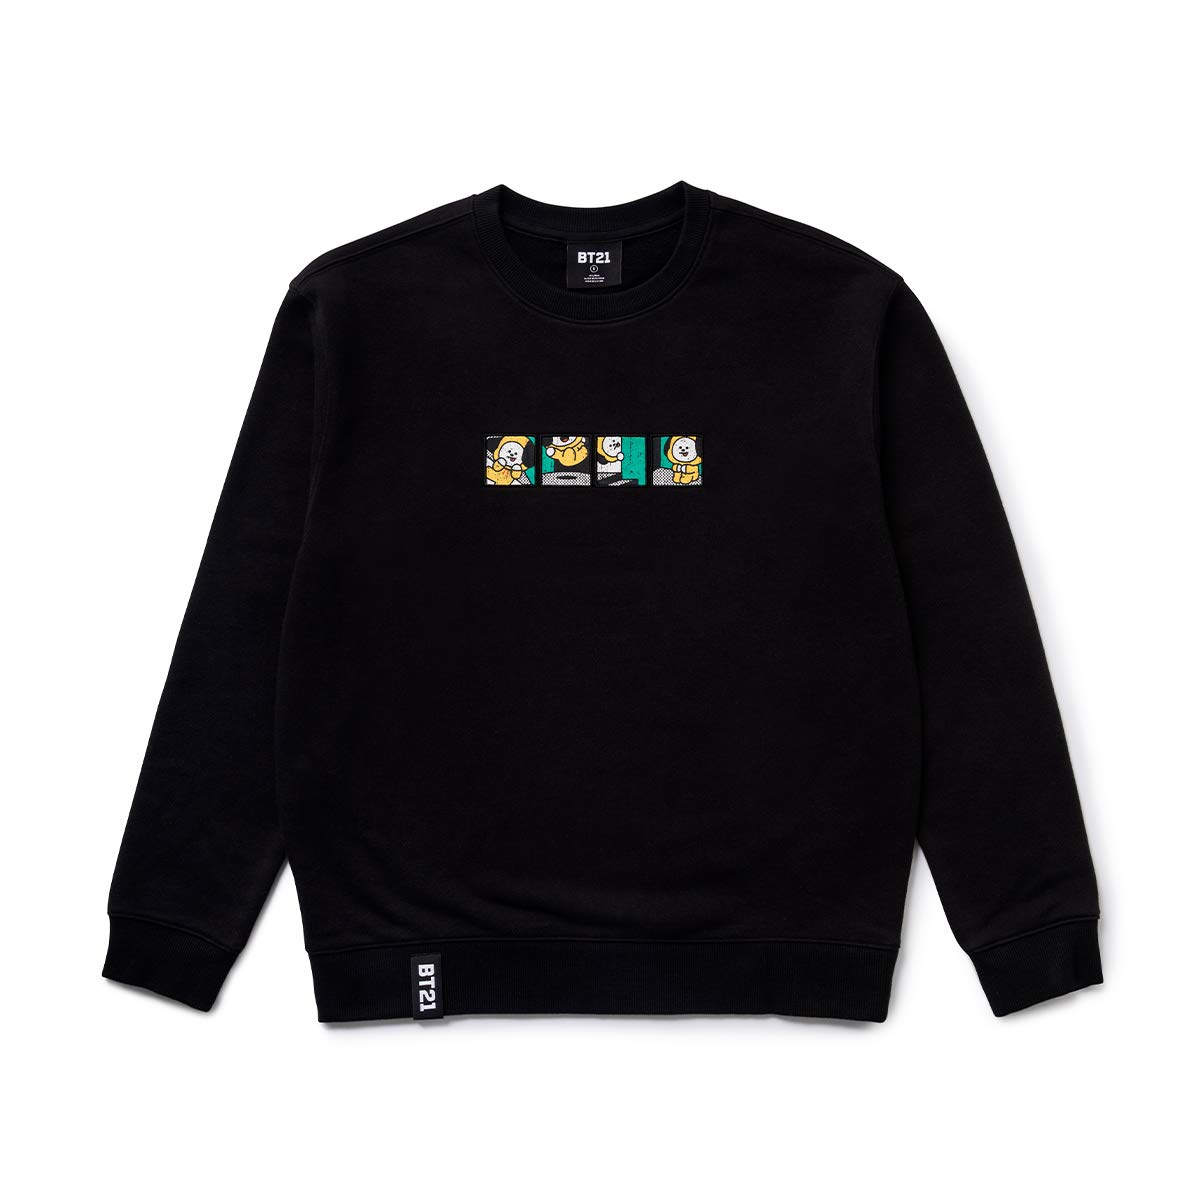 16639cd11b1 BT21 Official Merchandise by Line Friends - Character Long Sleeve ...